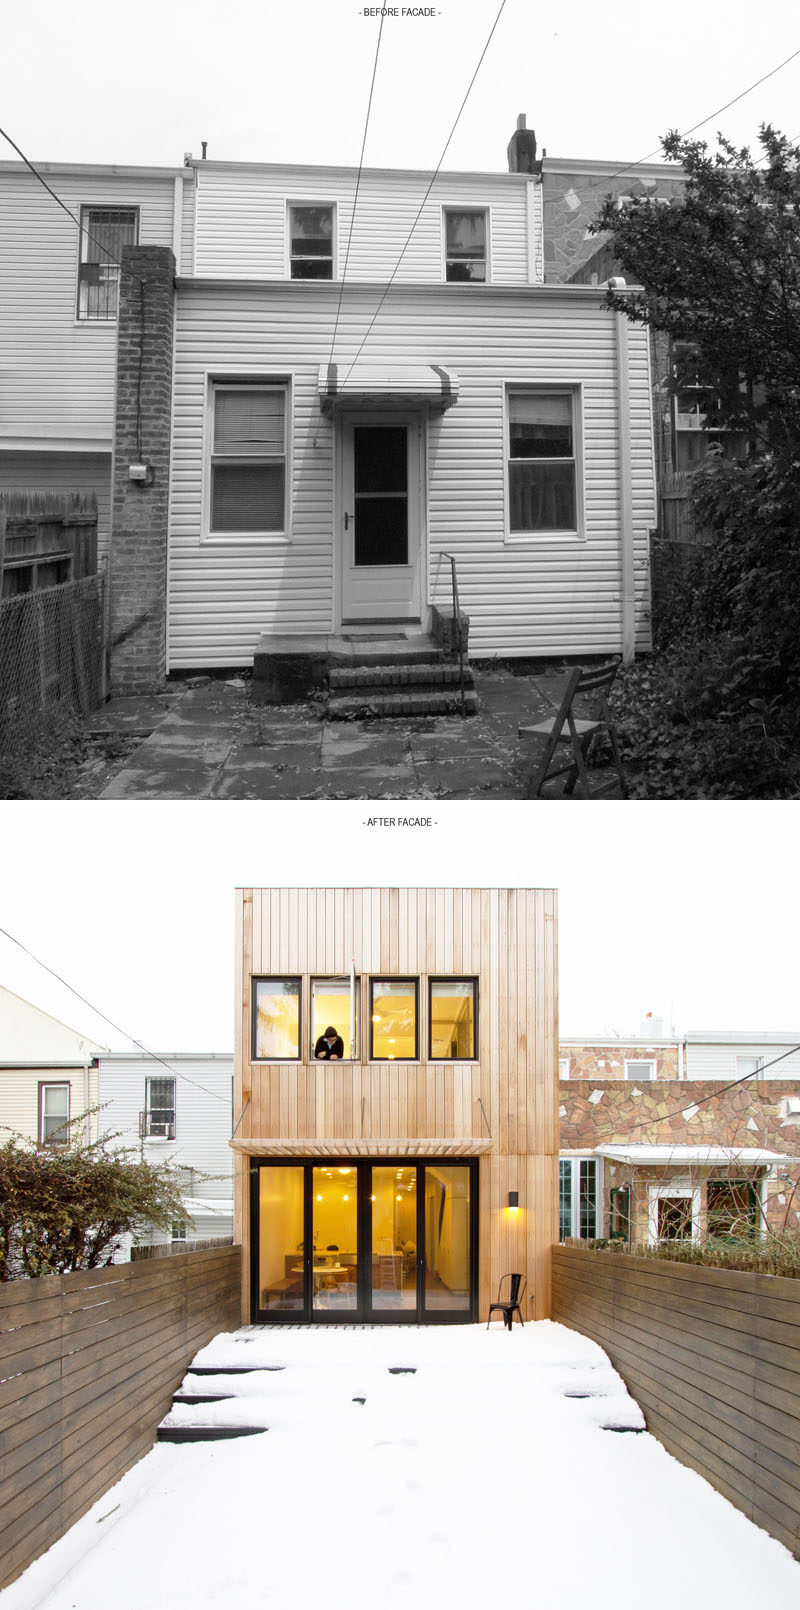 House Renovation Ideas - 17 Inspirational Before & After Projects // This old Brooklyn row home underwent a contemporary transformation that added an extra level, and replaced outdated white siding with light toned strips of wood.